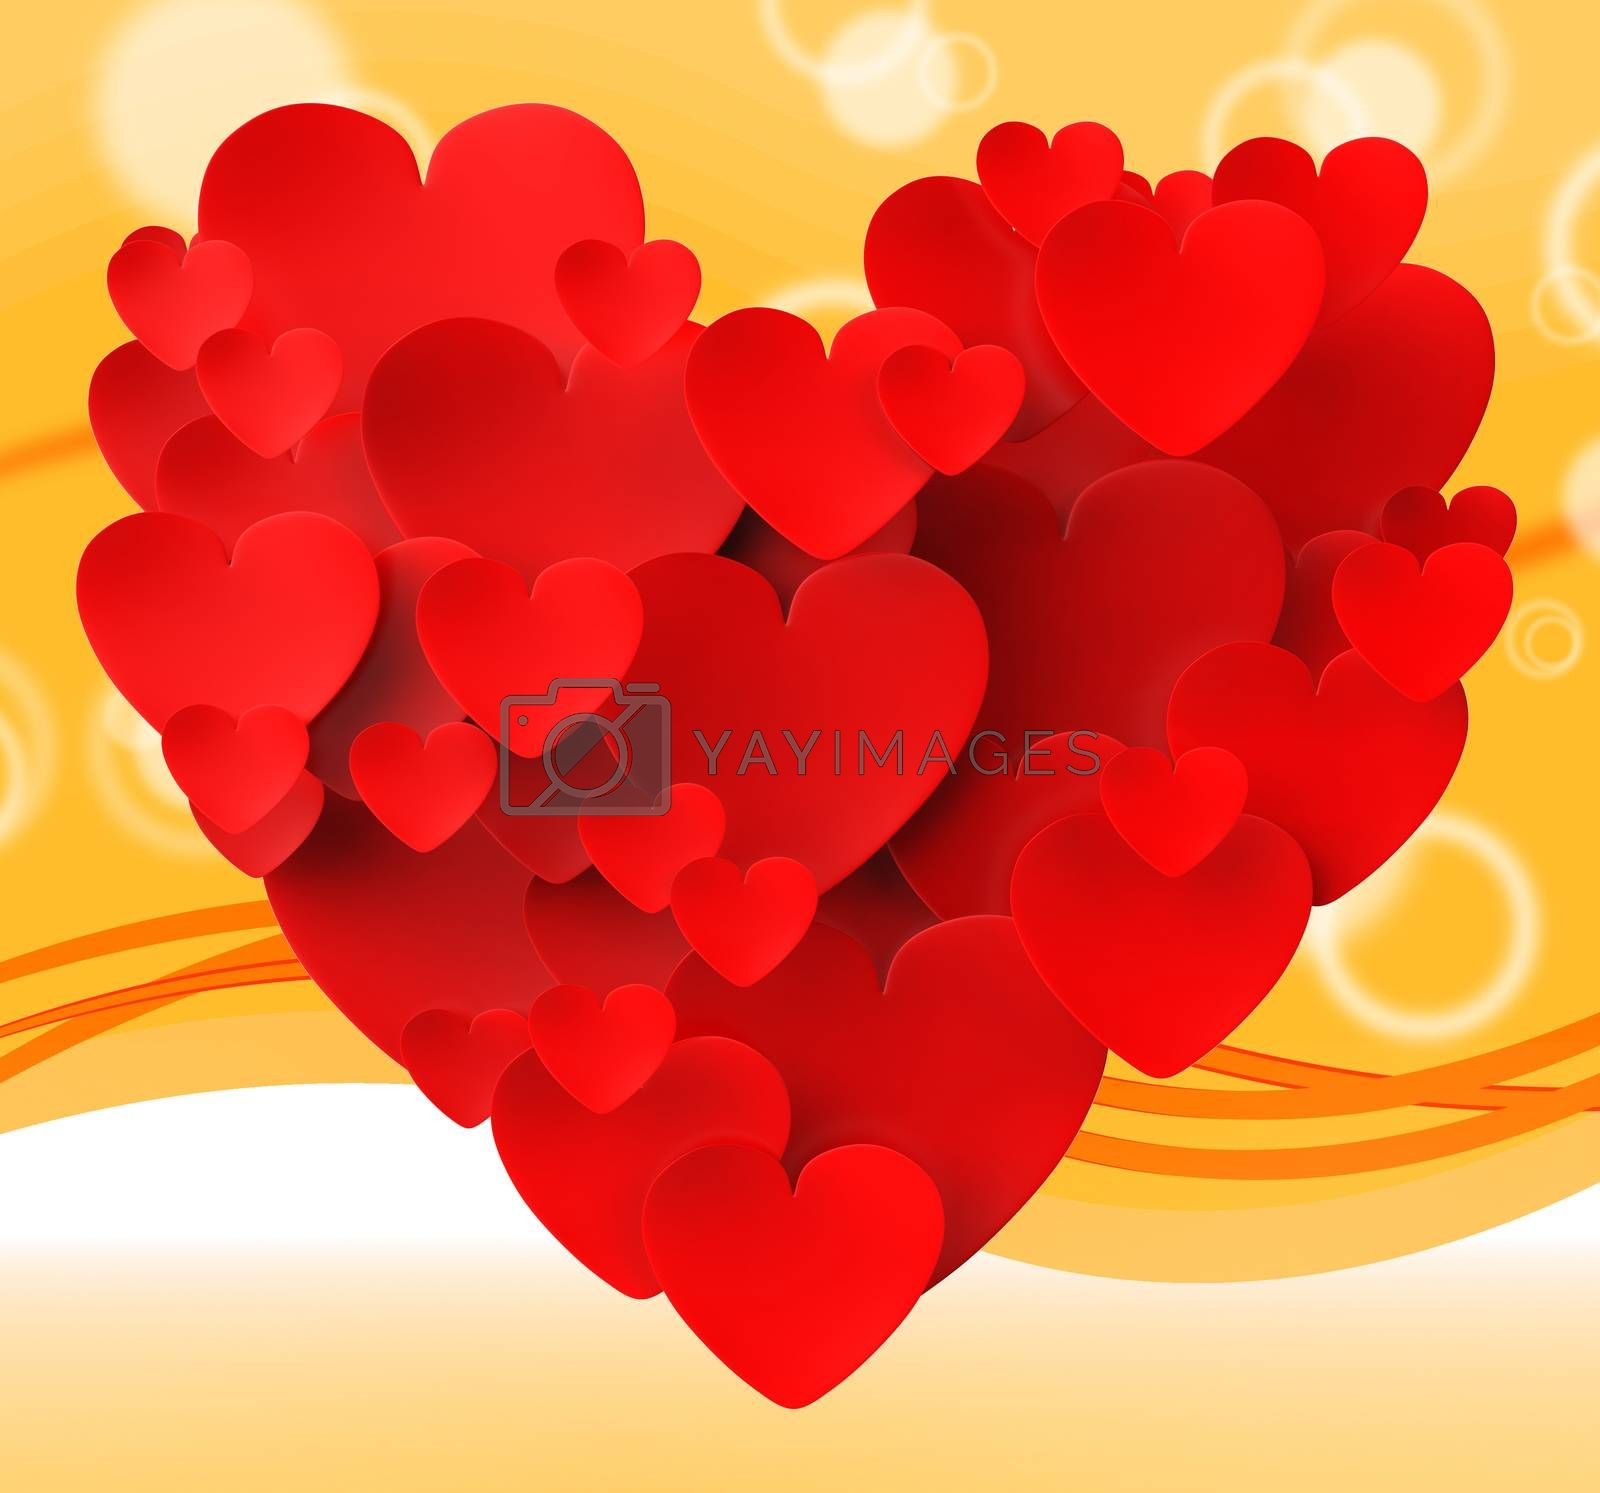 Heart Made With Hearts Meaning Romance Passion And Love